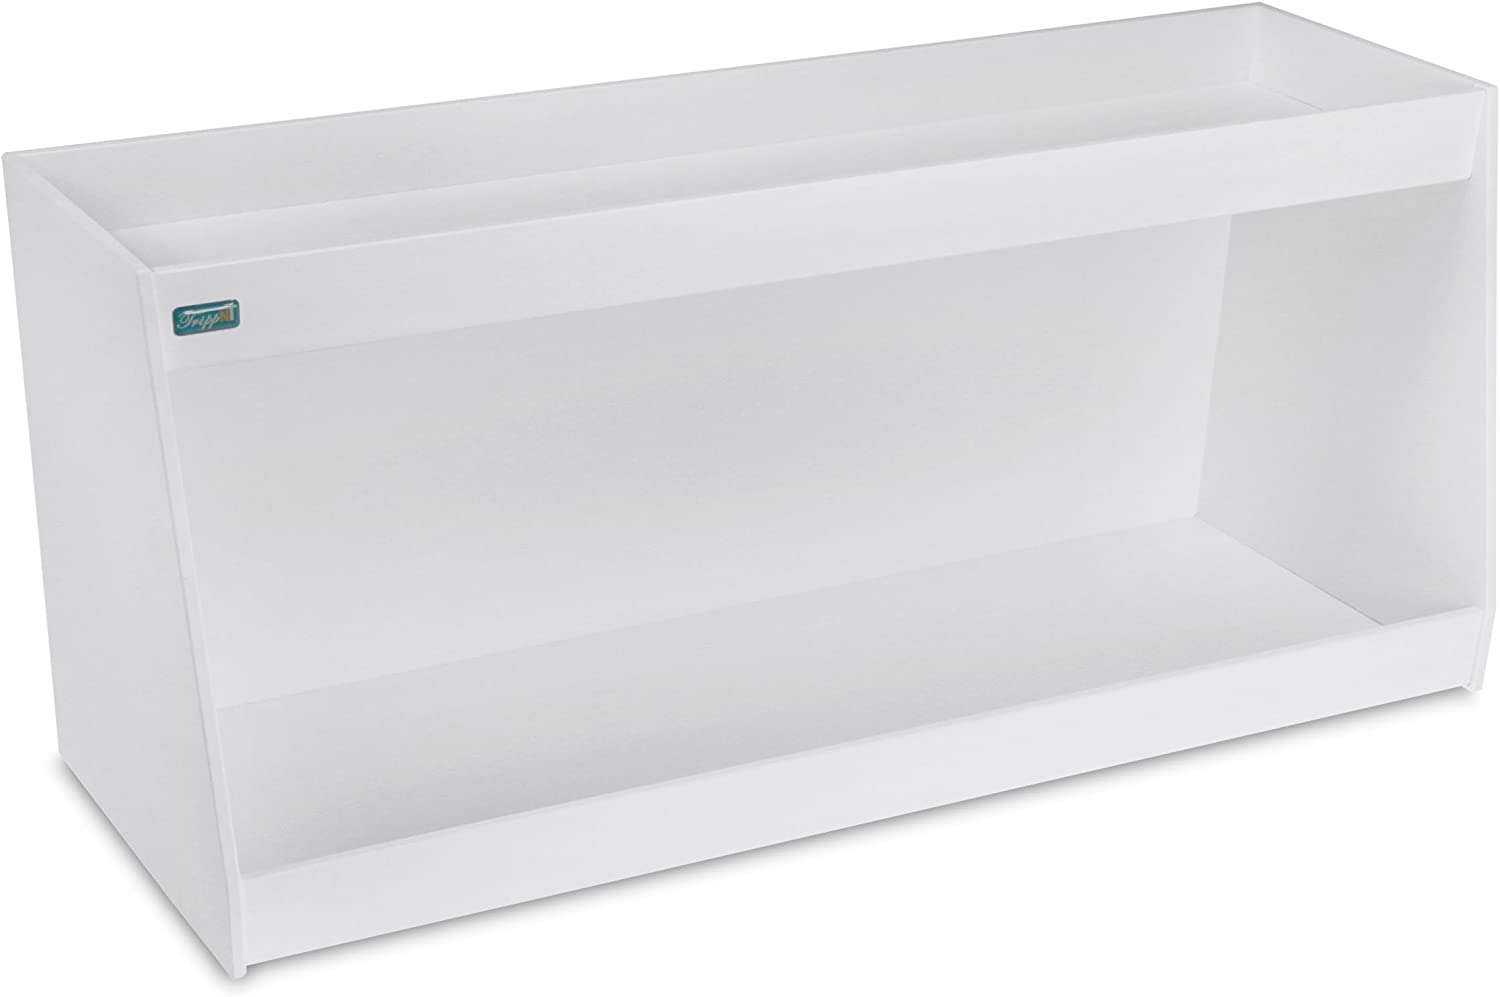 TrippNT 50480 PVC Angled Double Safety Shelves, 24-Inch Width x 10-Inch Height x 9-Inch Depth, White